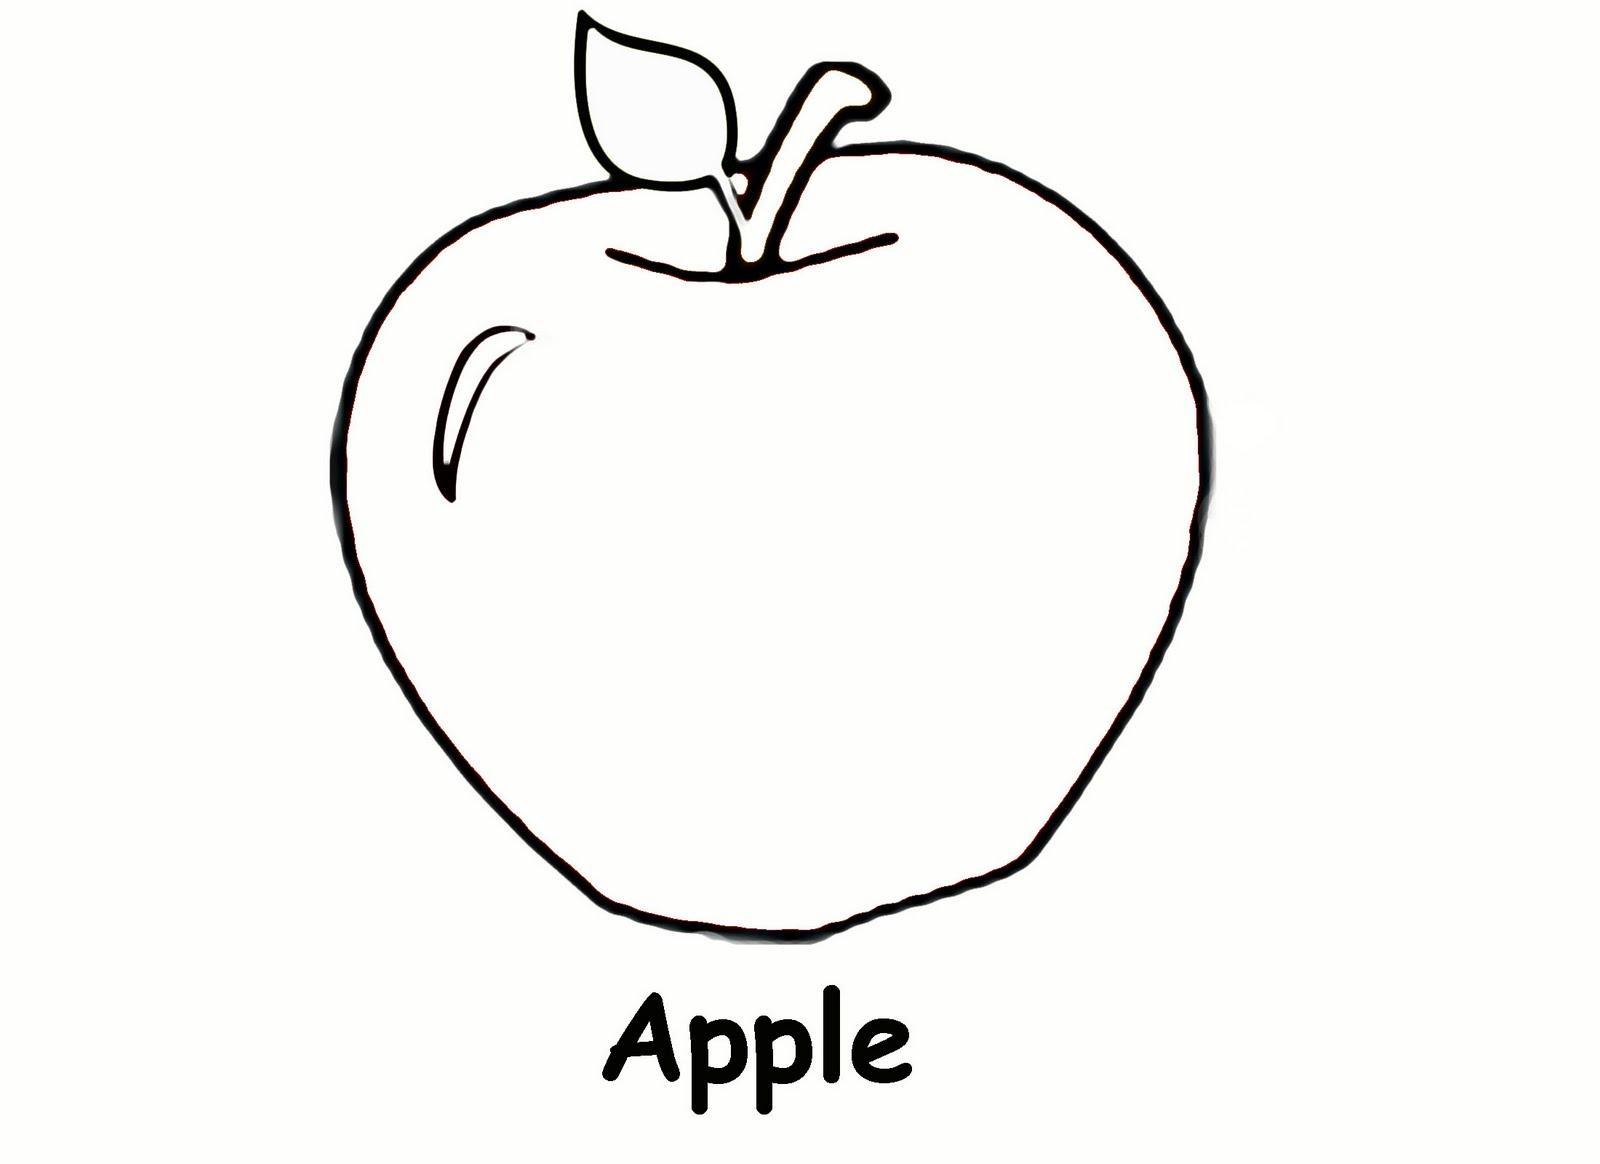 Free Printable Apple Coloring Pages For Kids Coloring Page Of An Apple